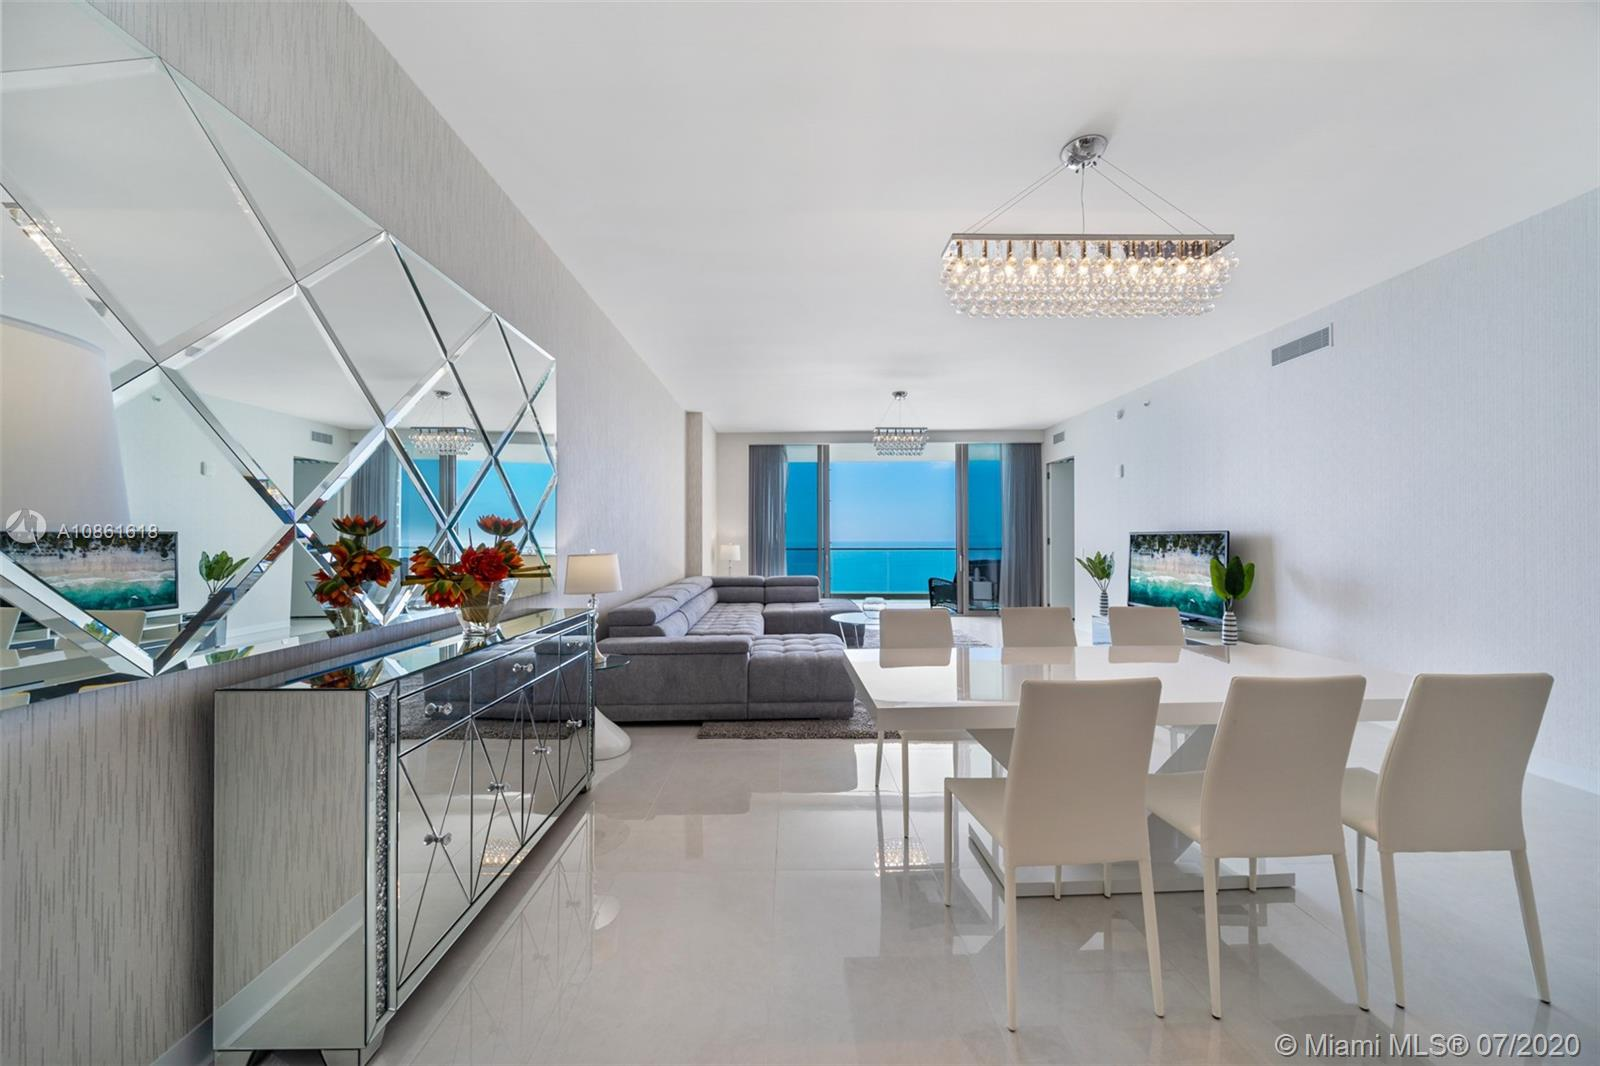 3-Bedrooms + Den / 3.5-Bathrooms (2716sqft interior + 756 balconies) FULLY FINISHED & FURNISHED. TURN KEY. click on VIRTUAL TOUR for VIDEO. 1 KING + 2 QUEEN BEDS (made in Italy). OCEANFRONT everything: pool, gym, restaurant, theatre, game room, yoga studio, 2-story spa with hair salon, sauna, steam. BREAKFAST CAFE EVERY DAY. This 27th floor flow-through, east to west, sunrise to sunset, condo has a Den (make it your office or library?), midnight bar in Master, fully built out closets, chandeliers, curtains, porcelain tile floors, BBQ on Balcony, NEST Thermostats, TOTO Toilets, Electric Range on kitchen island with hidden ventilation system, Washer+Dryer. RENTED for $10,500/m until July 31, 2021, very difficult to show. SEE VIDEO.